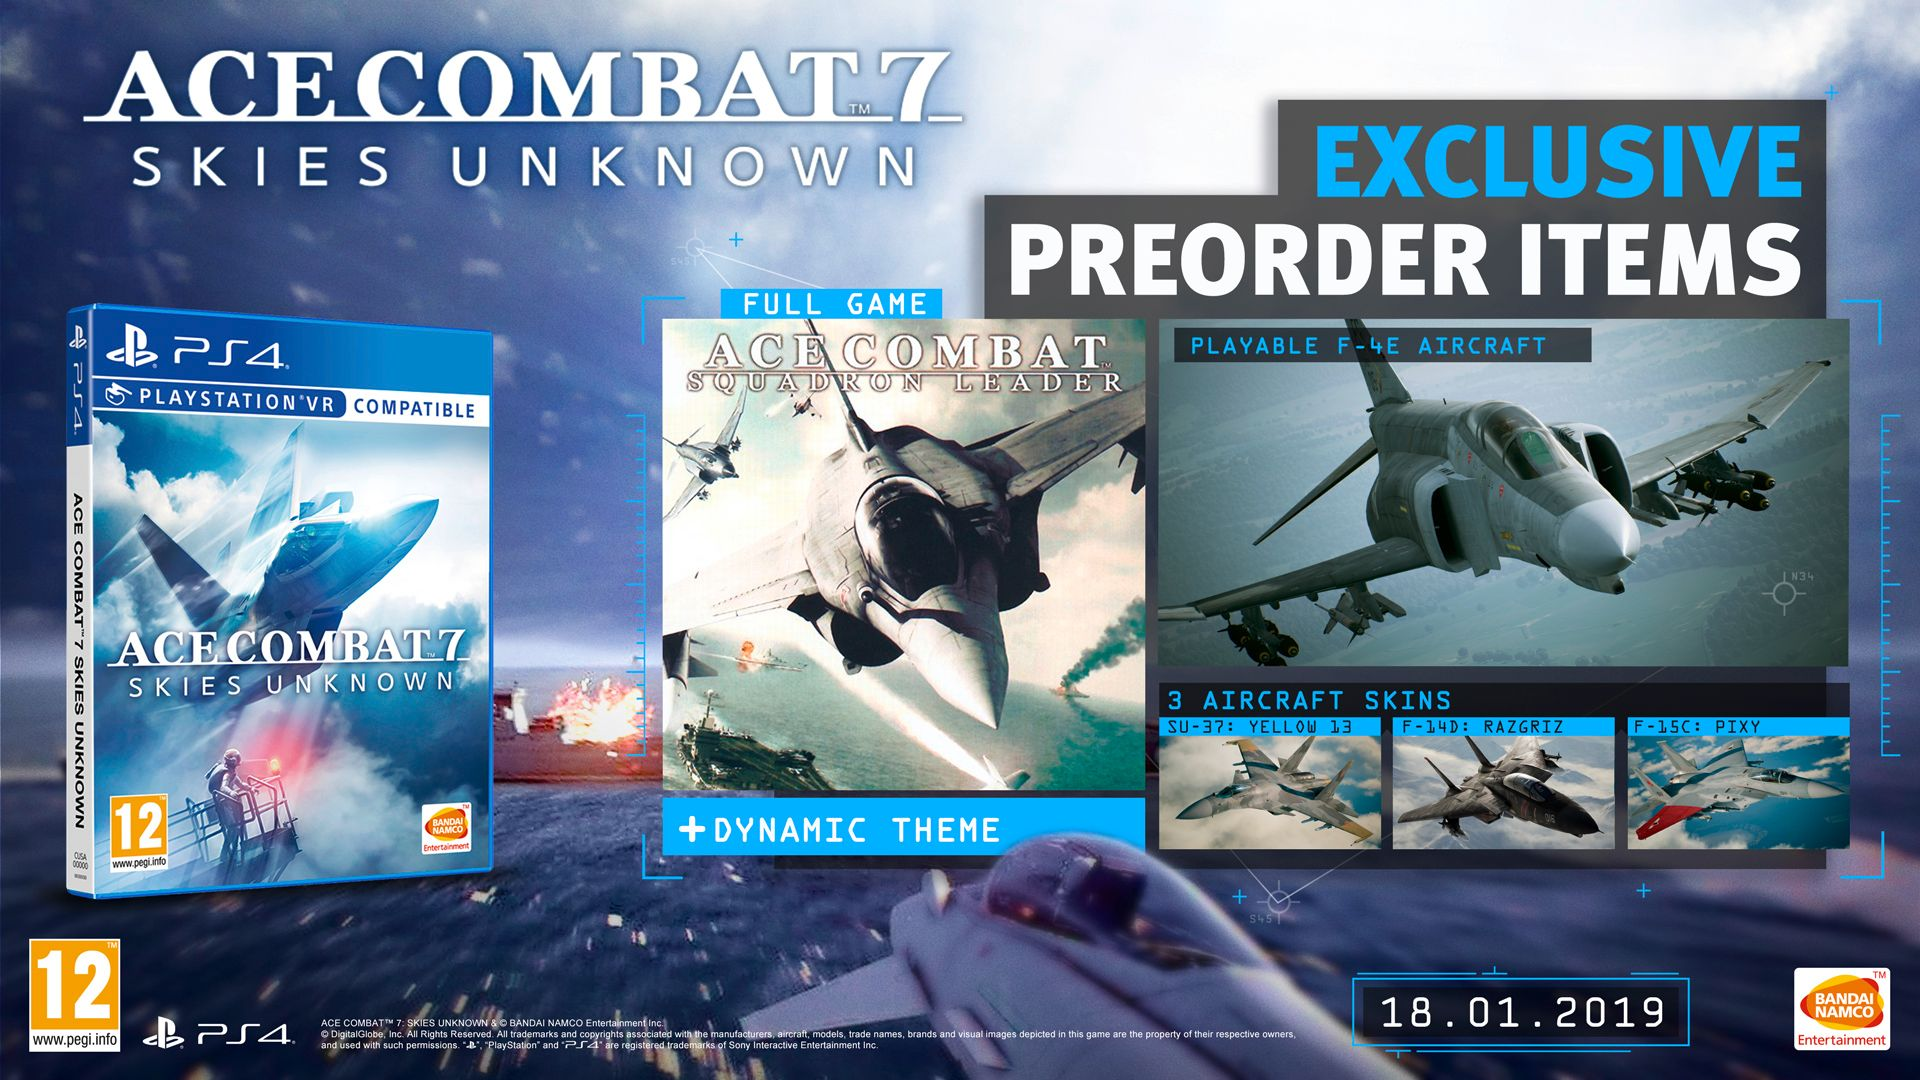 Pre-order bonus and deluxe edition revealed for ACE COMBAT 7